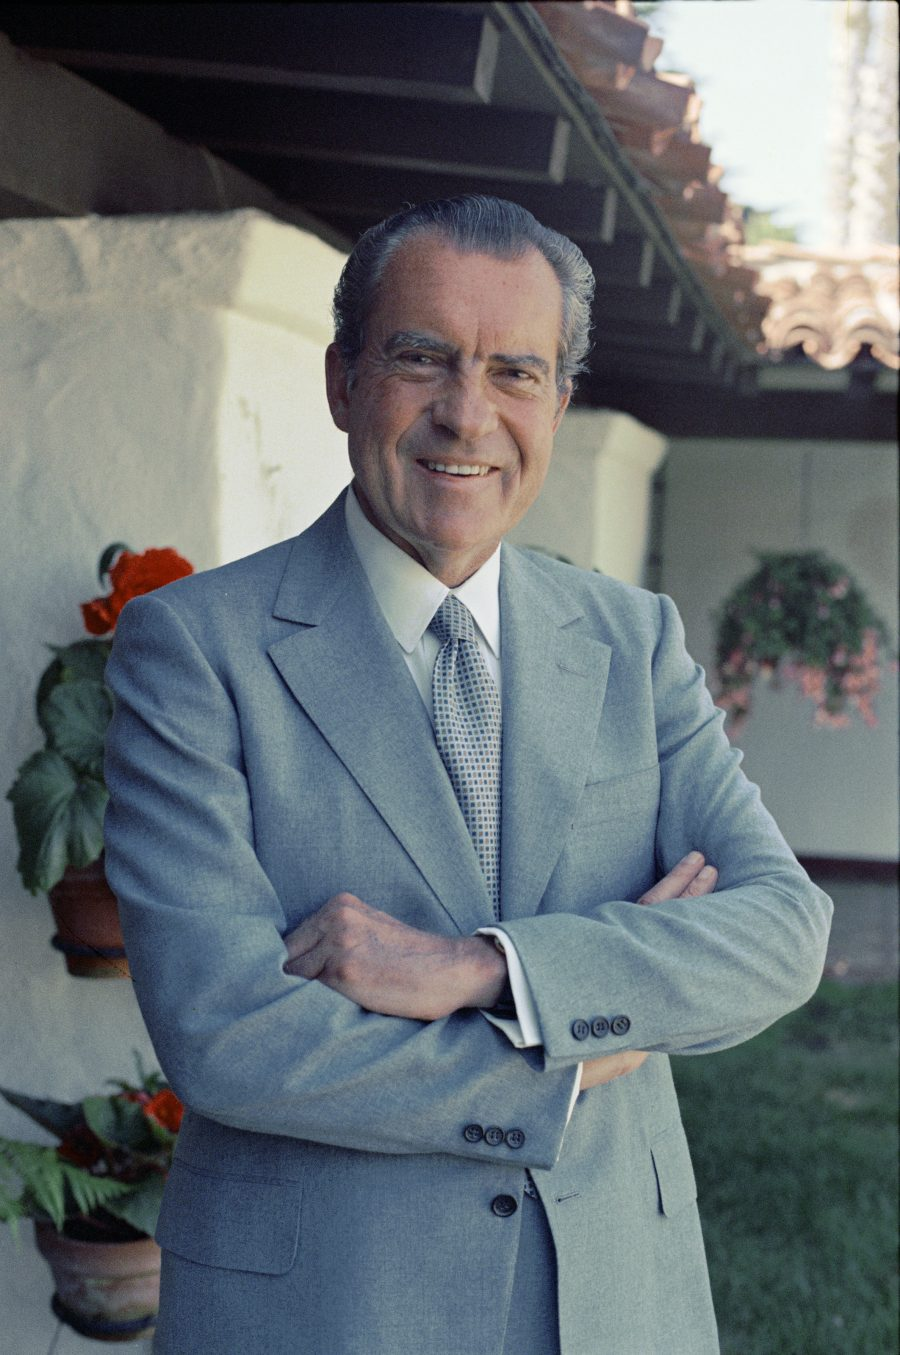 President Nixon visited San Juan Capistrano and San Clemente in March 1969 amid rumors he was purchasing a home at Cotton's Point, on the south end of San Clemente.